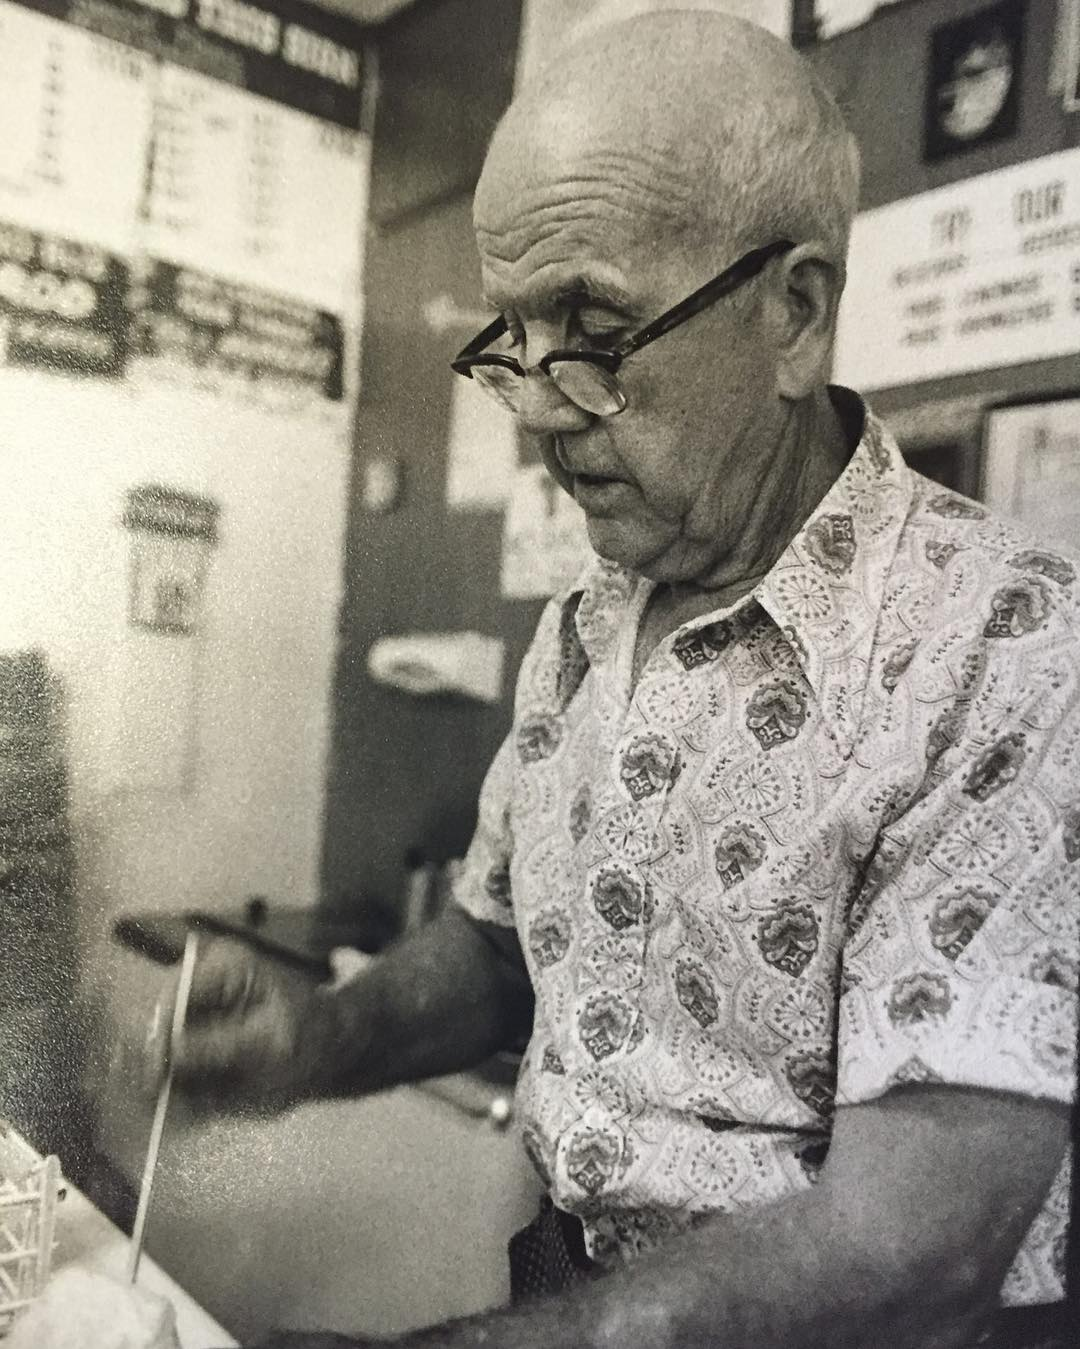 """Happy Birthday! To the Man with the Air-Conditioned Tummy! Thank you making life so fun! Miss you all the time."" – Ashley Hansen On behalf of the entire Hansen's Sno-Bliz crew, a happiest birthday to the late, truly great Mr. Ernest Hansen!"